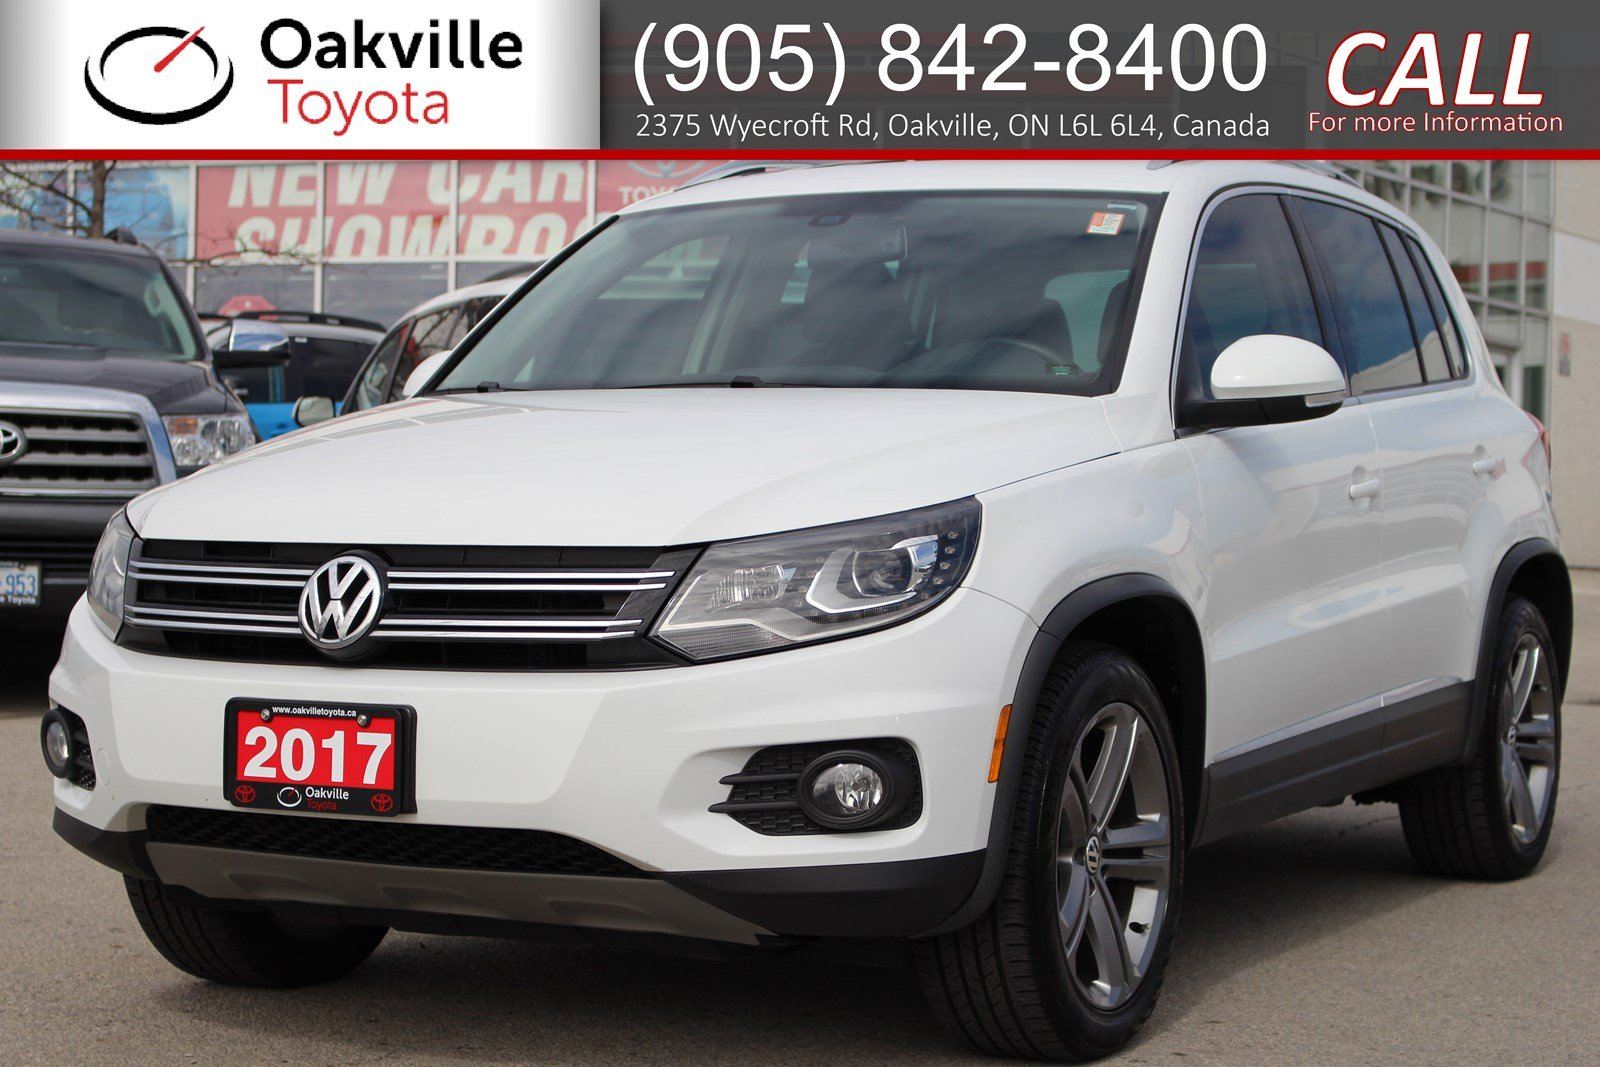 Pre-Owned 2017 Volkswagen Tiguan Highline AWD with Panoramic Sunroof and Leather Interior